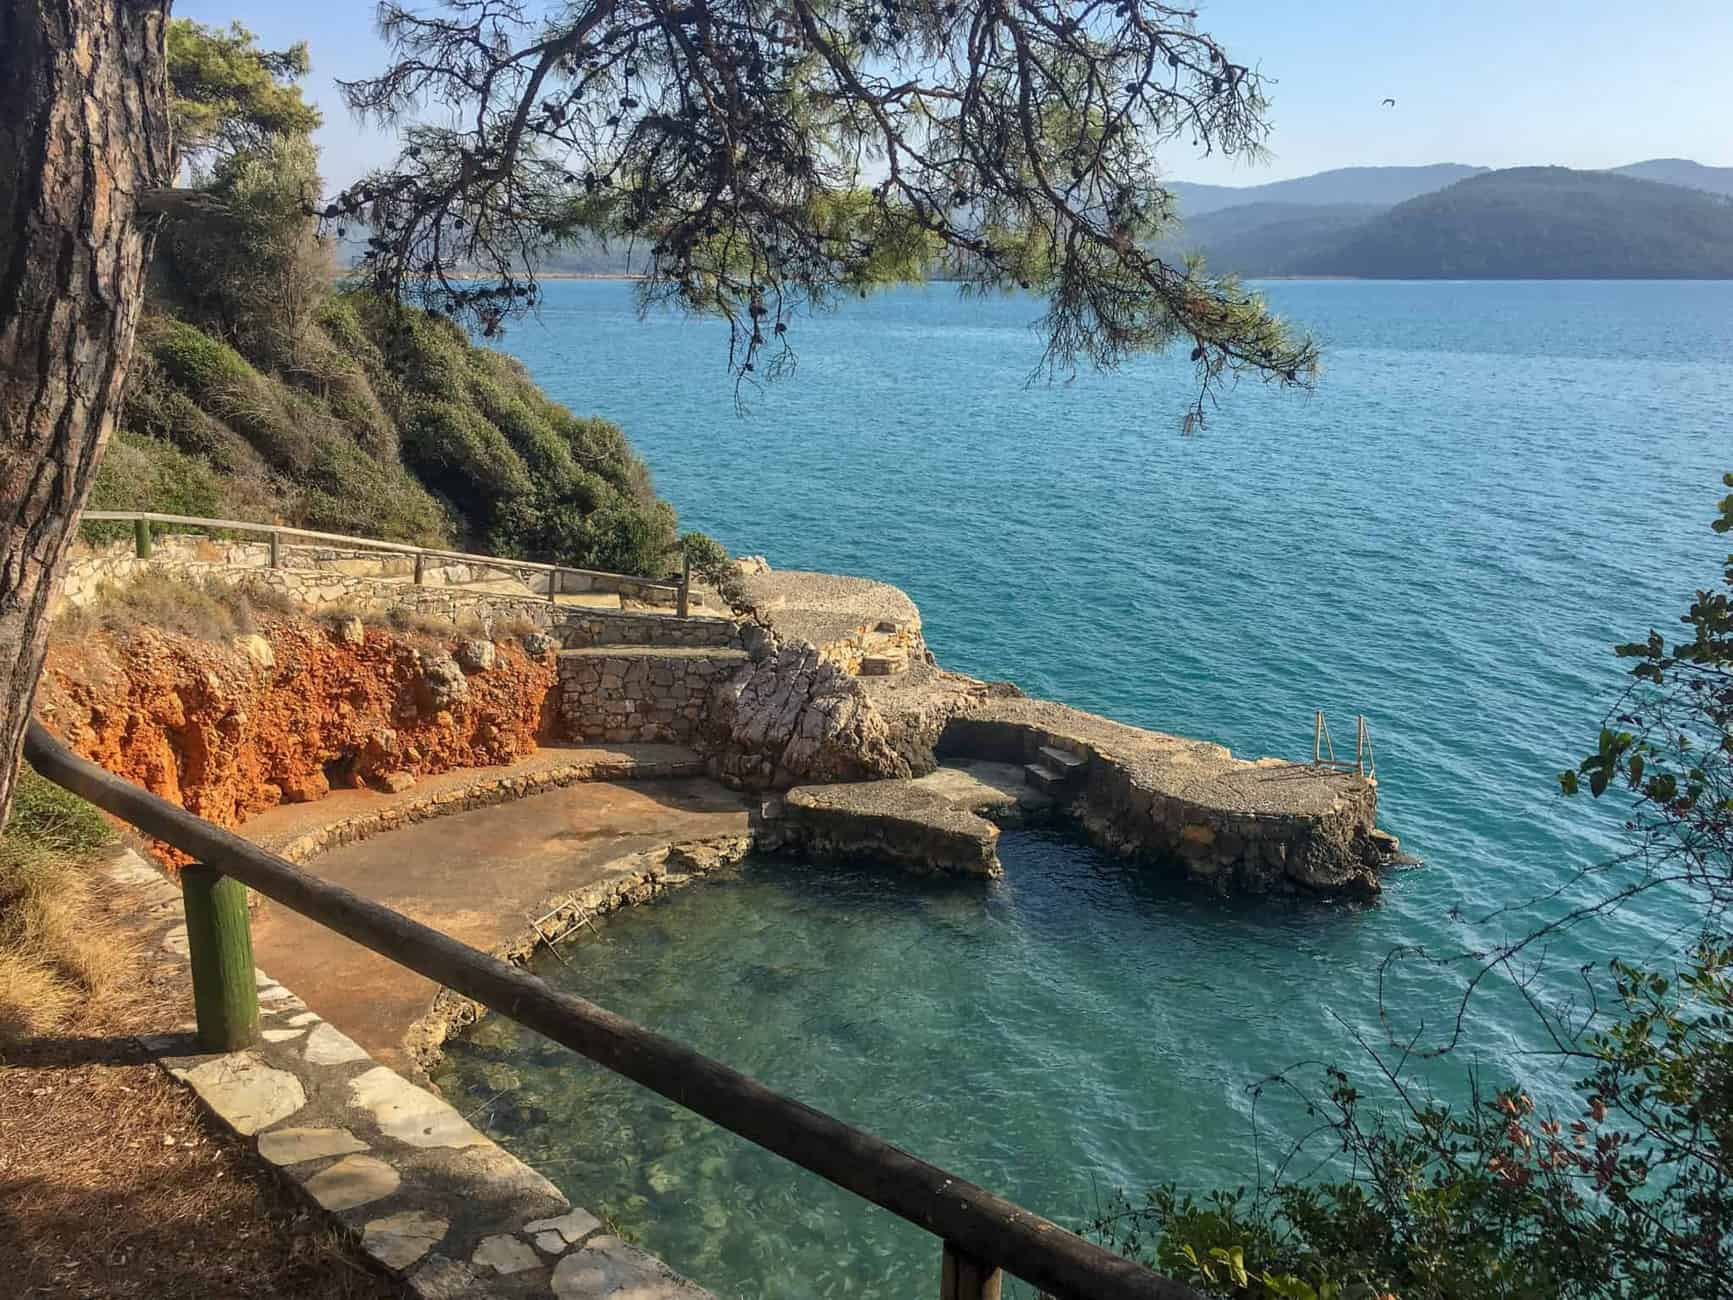 Beautiful views in Akyaka of private beach coves